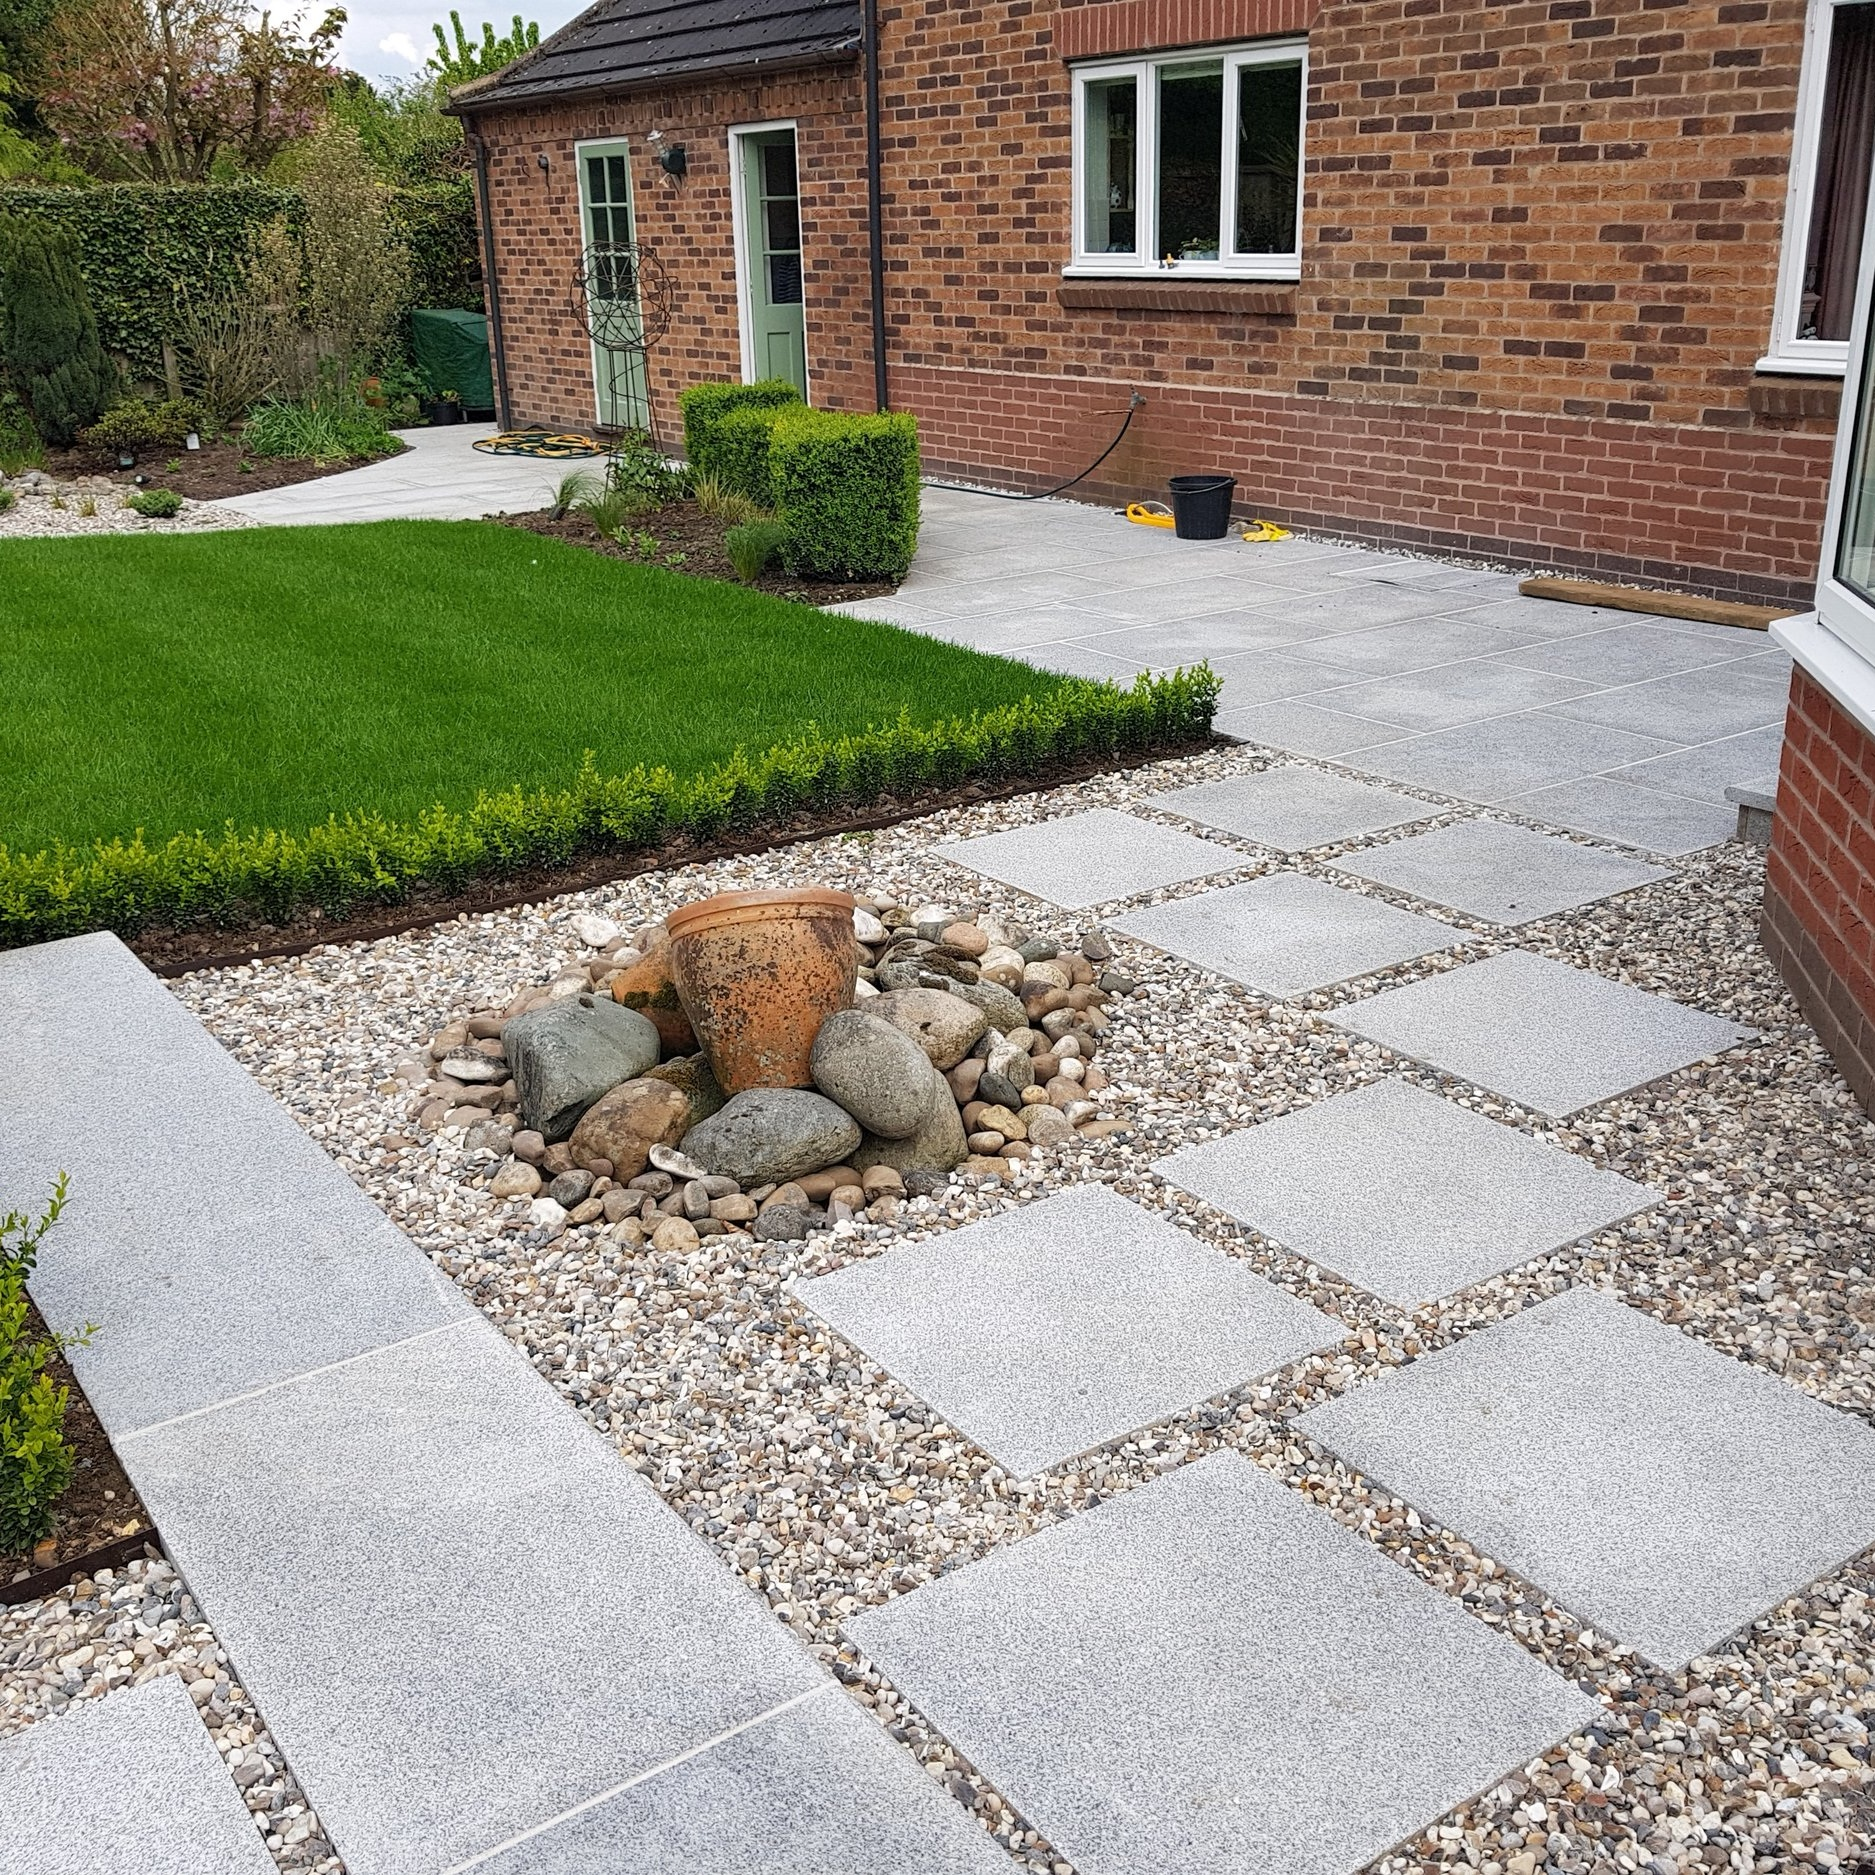 Garden design - View a selection of our completed garden design projects for private and commercial clients.